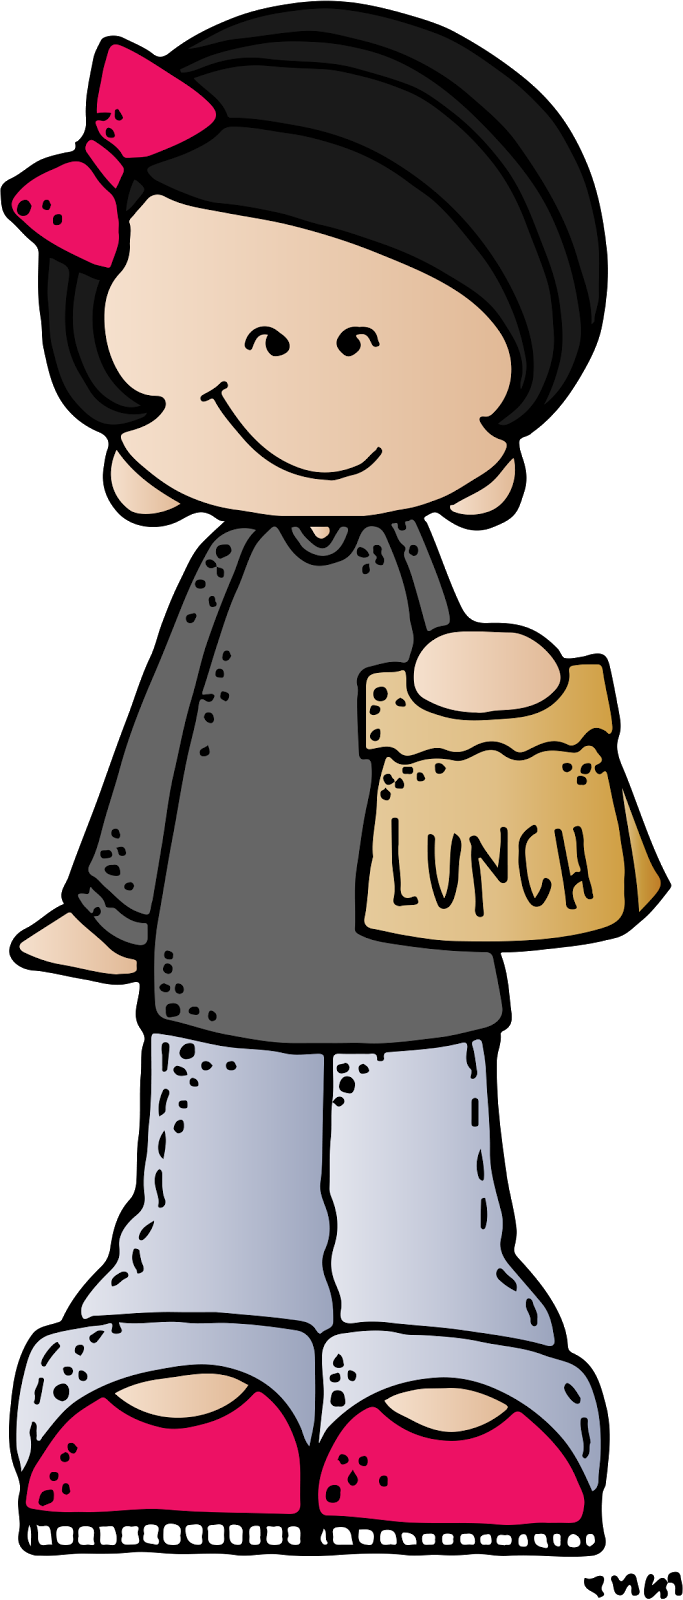 Day ltw c melonheadz. Menu clipart senior lunch